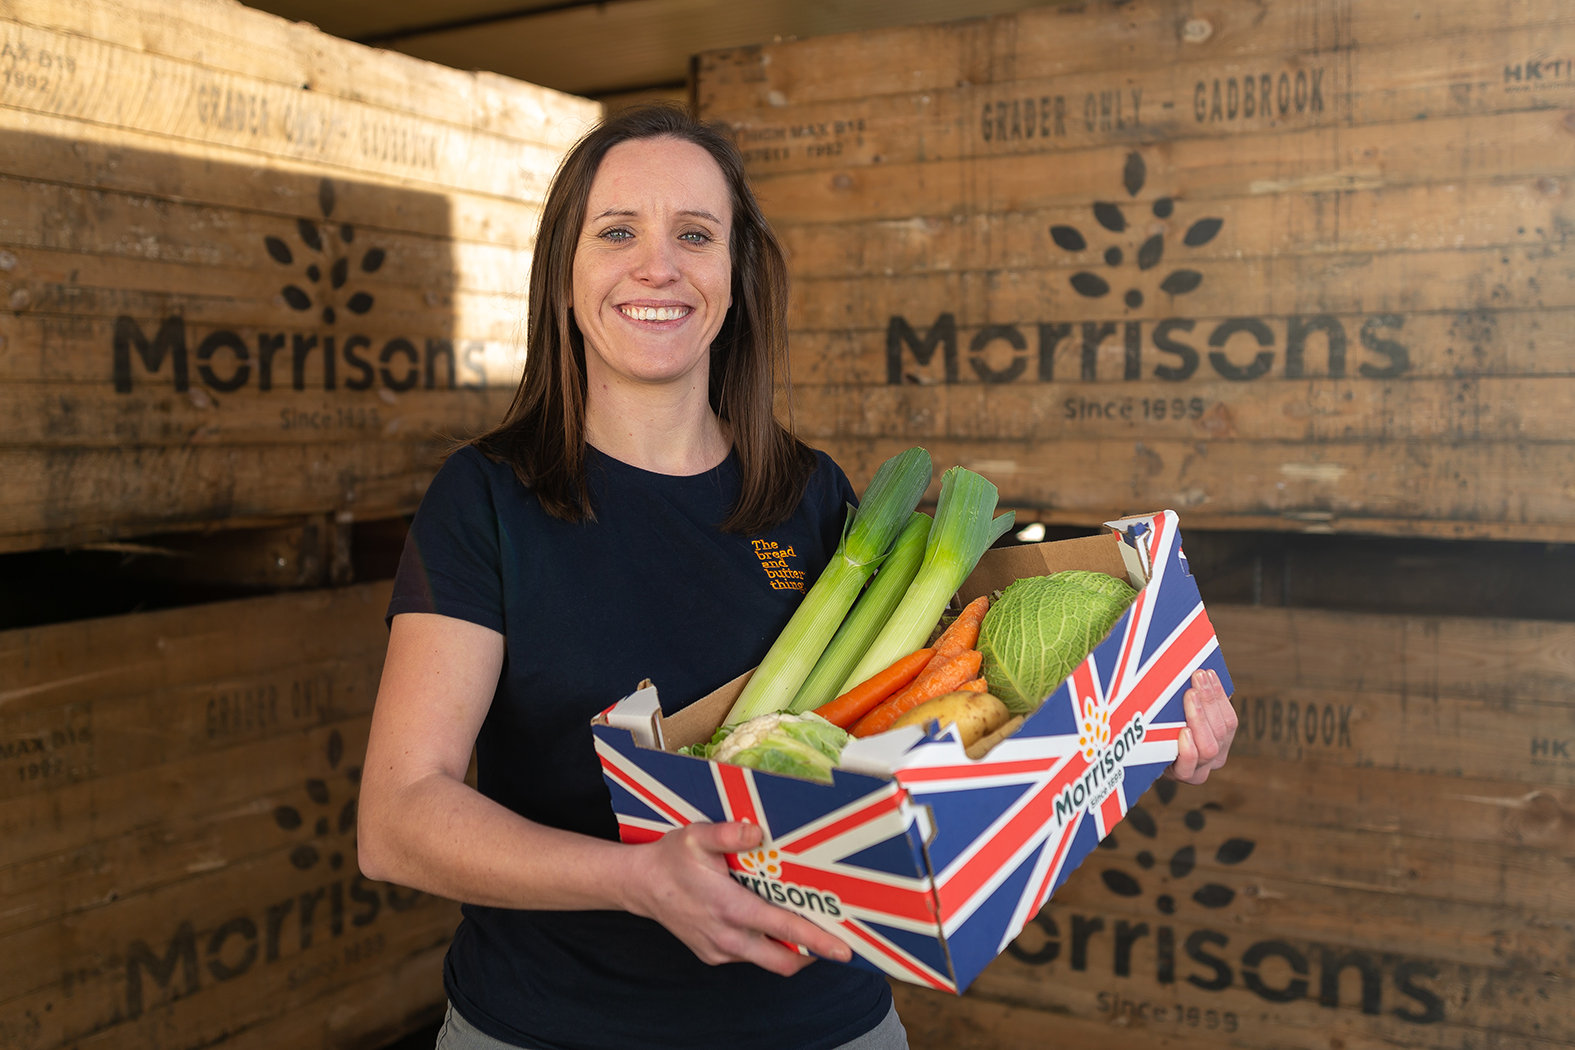 Morrisons to Provide Two Million Meals to Families in Need from Food-making Operations